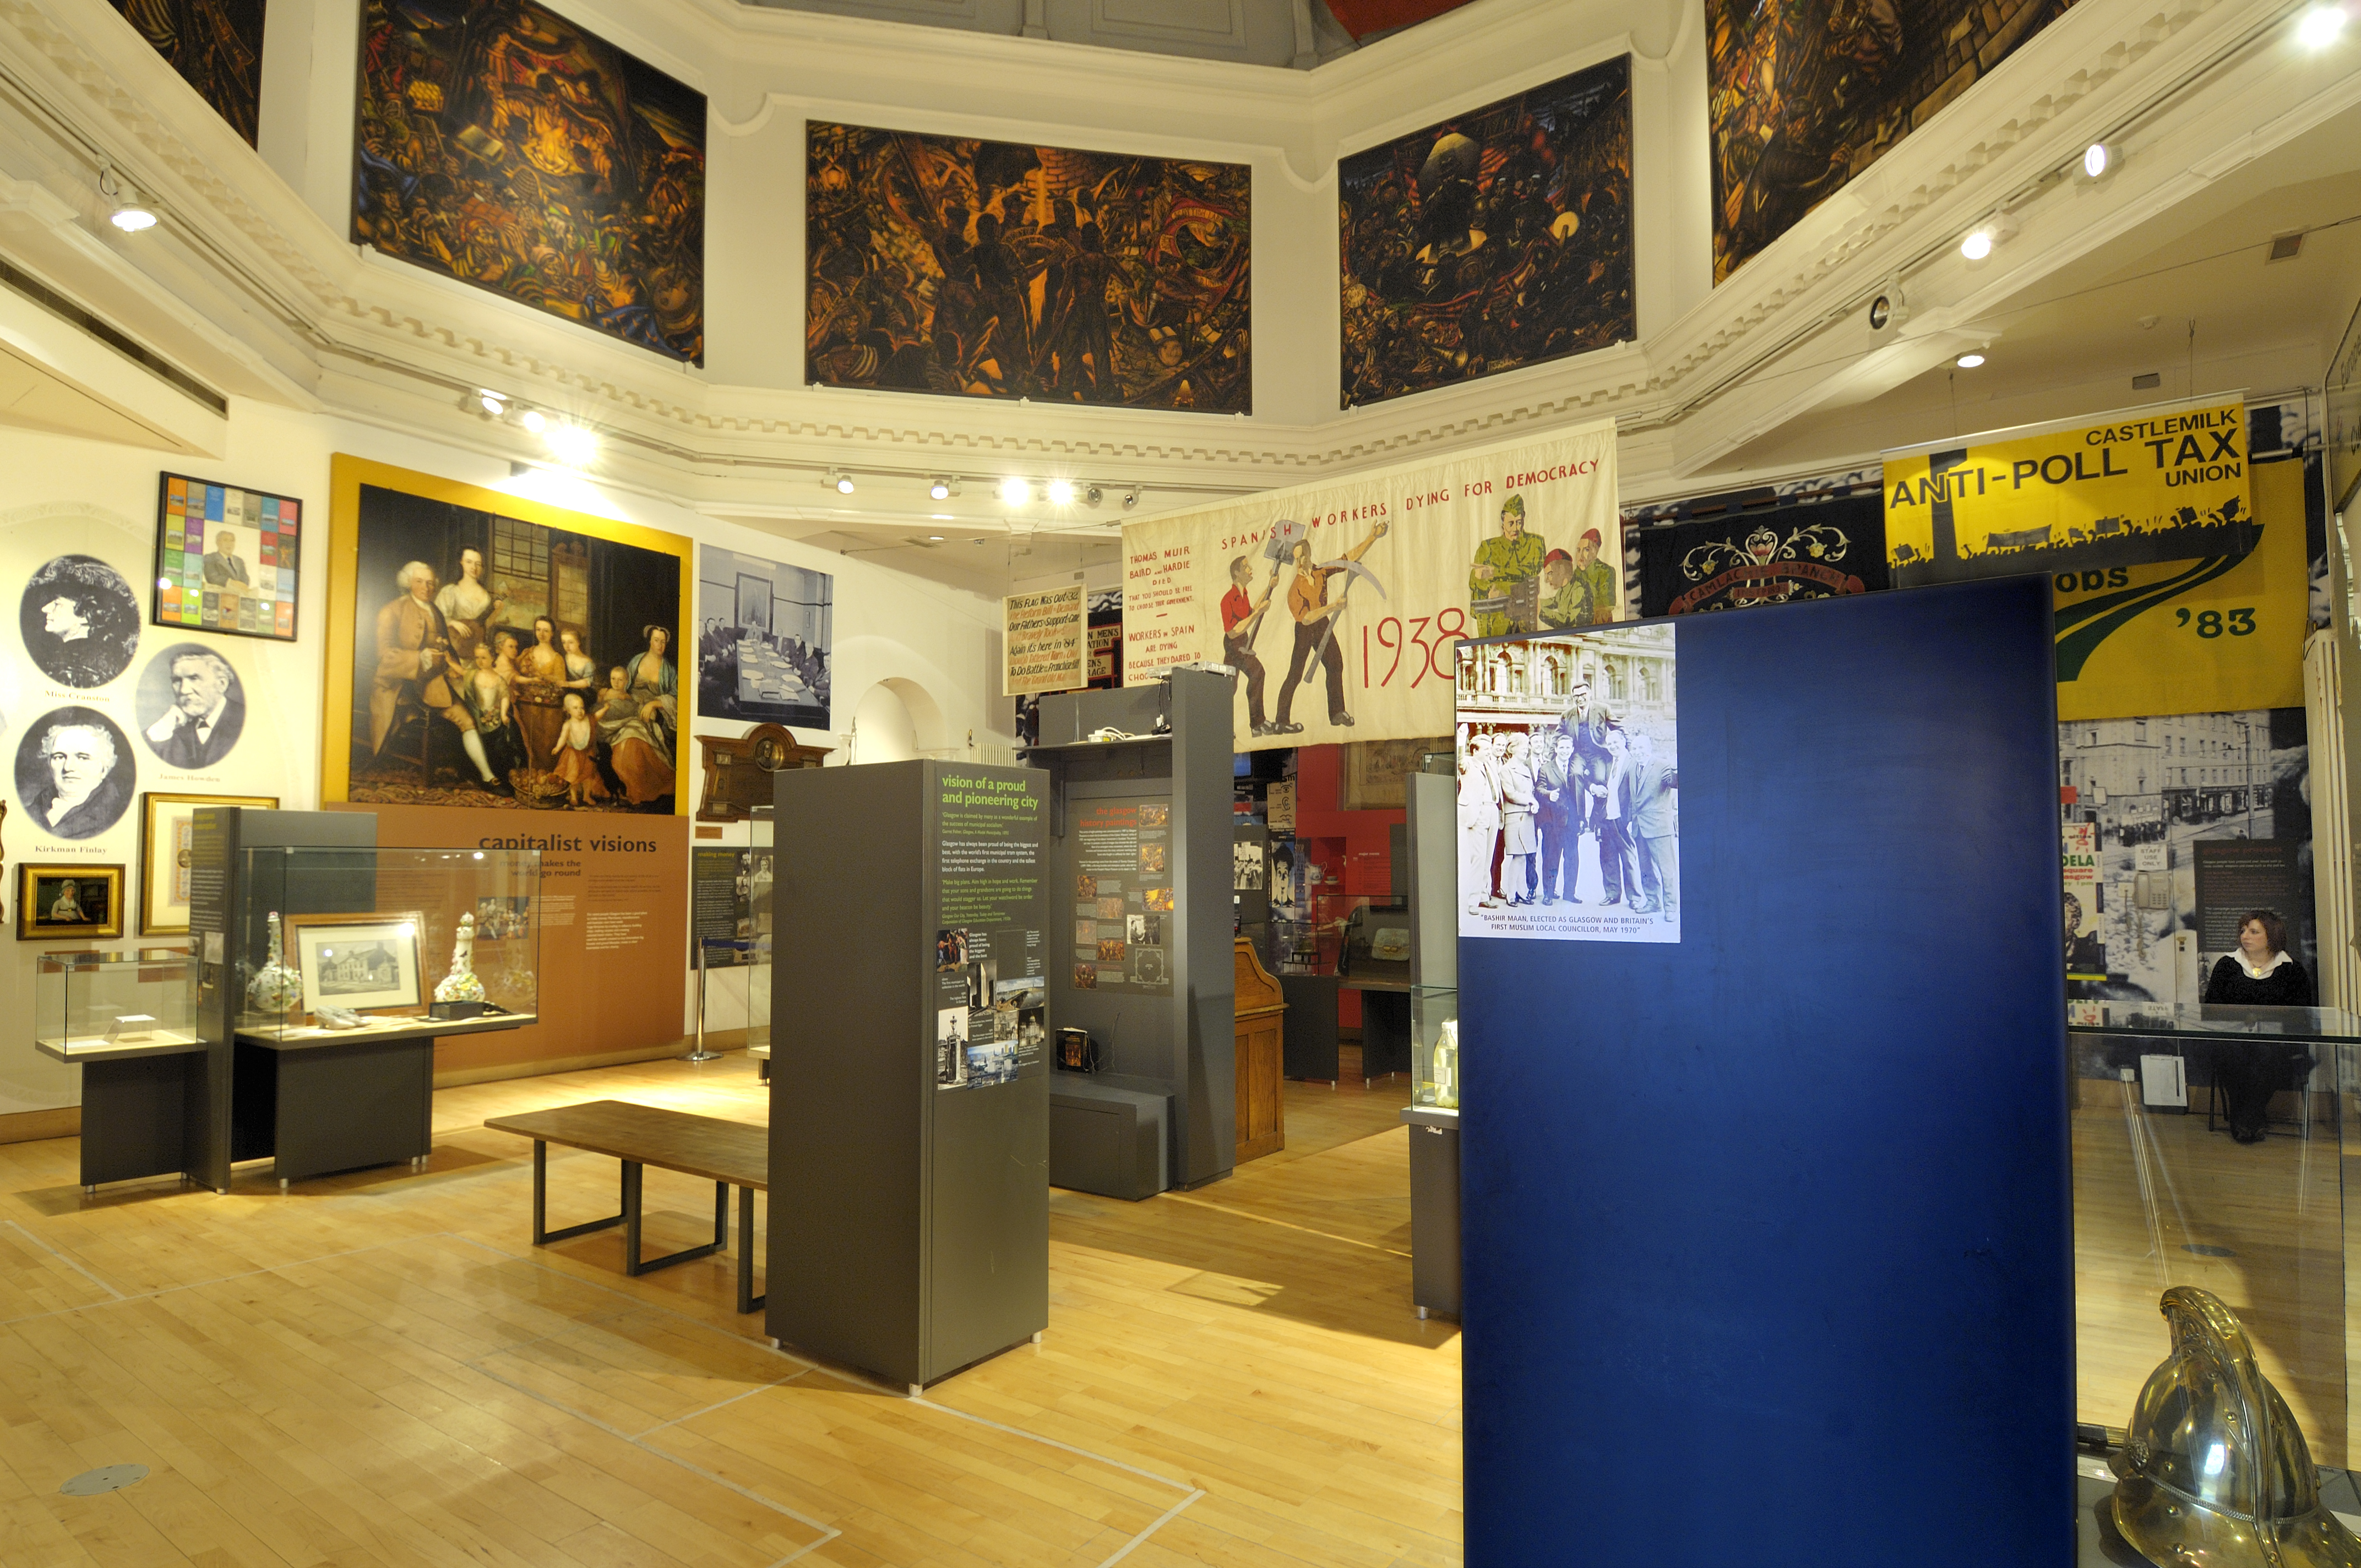 Exhibition Displays Glasgow : People s palace collection highlights u glasgow life